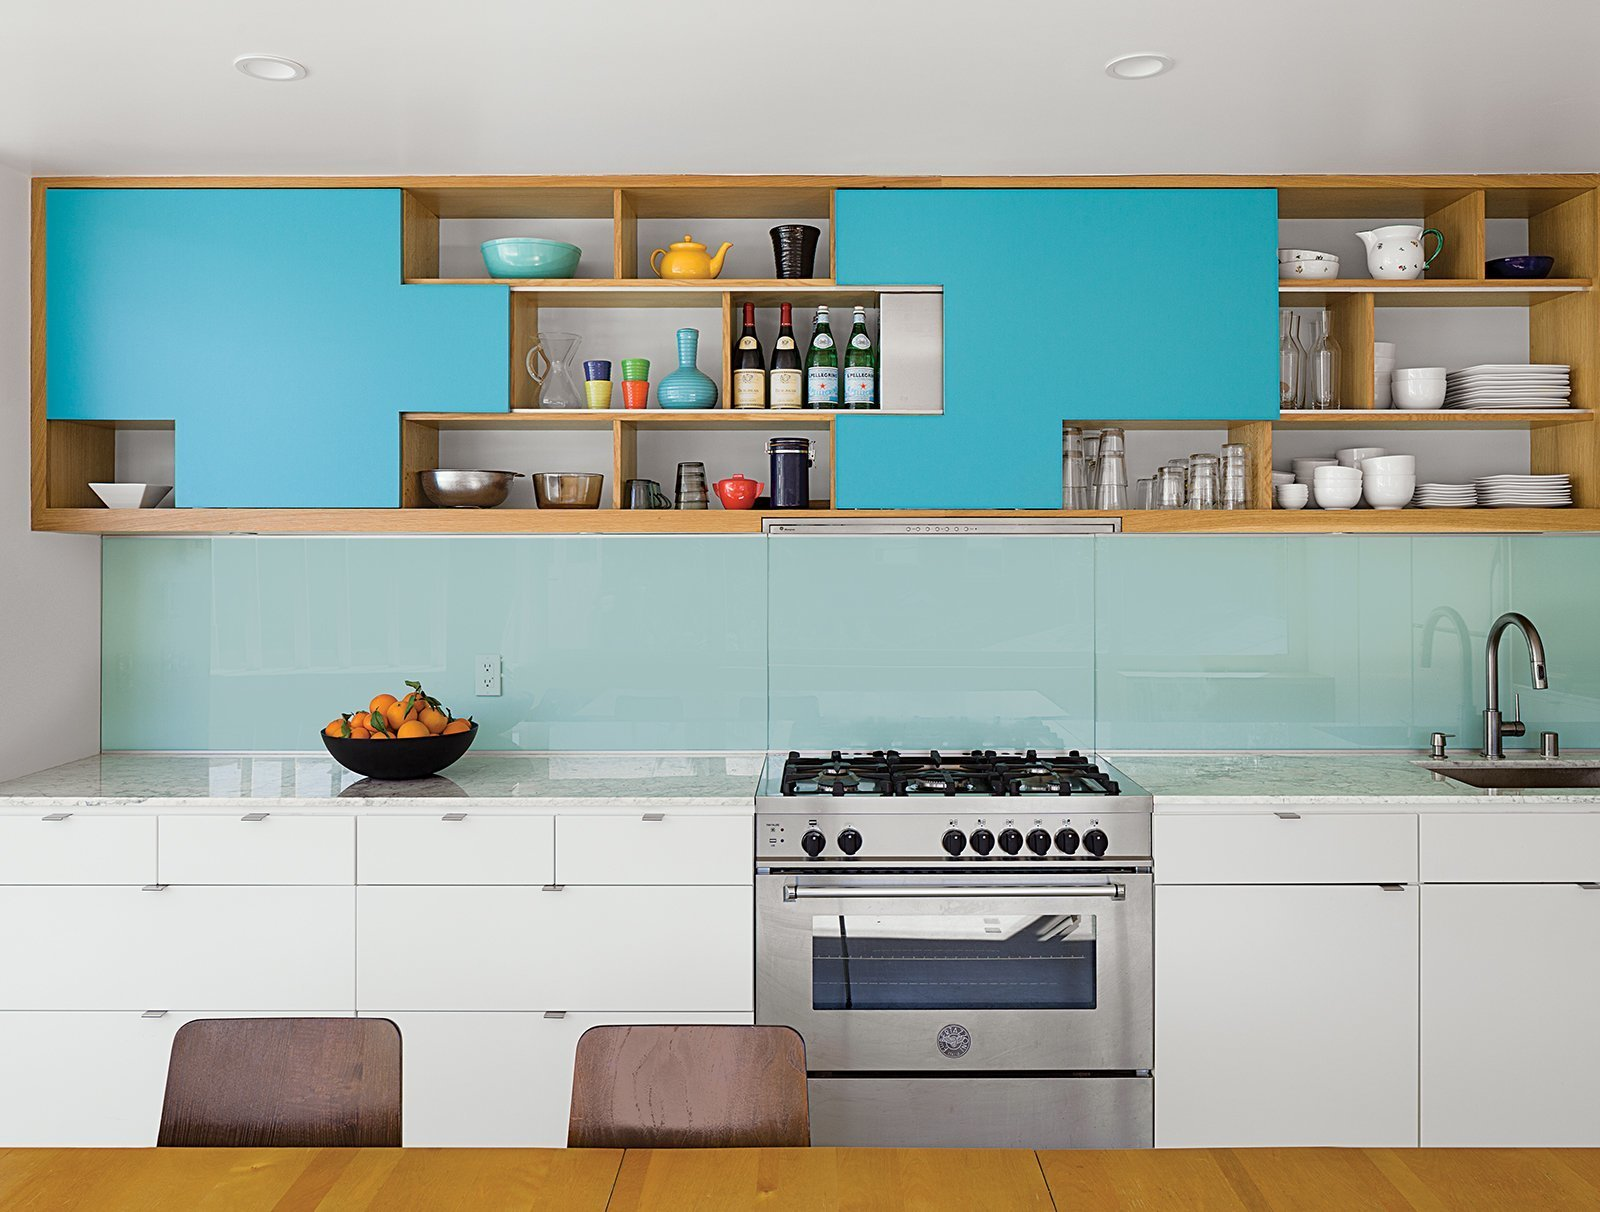 9 Great Kitchen Cabinet Ideas - Dwell